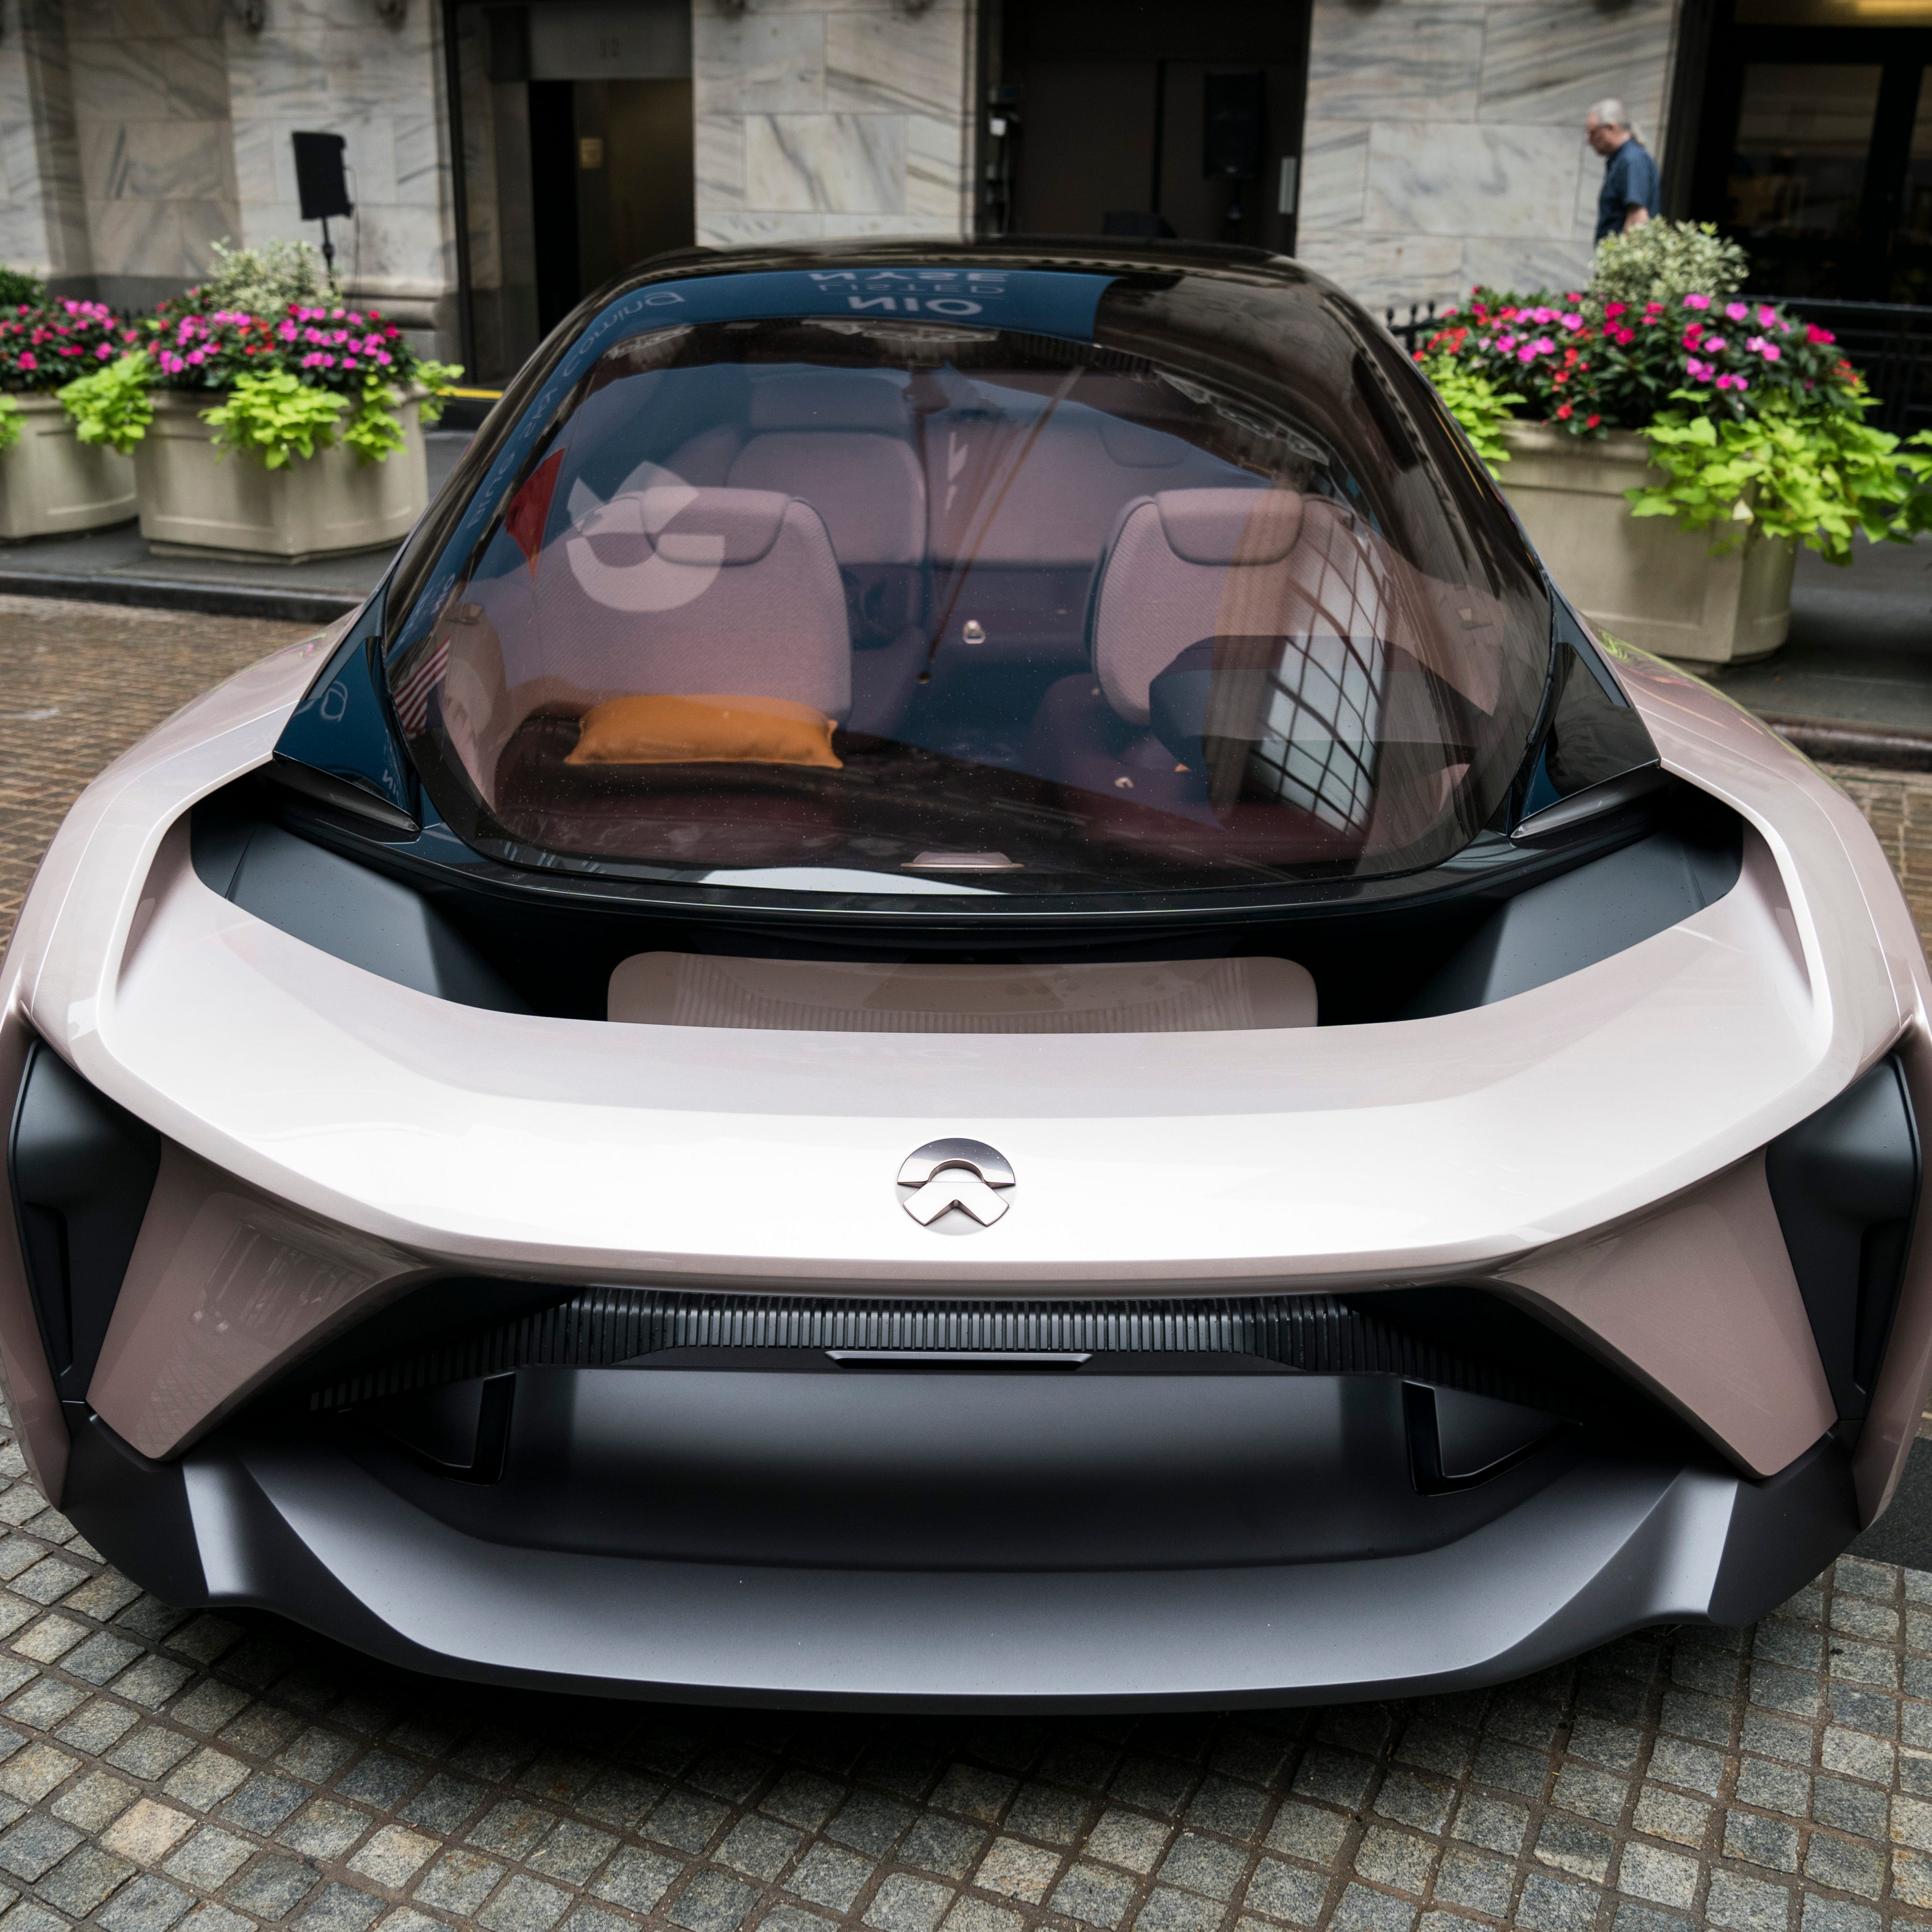 Howes: China's NIO symbolizes new pressures in the global EV game